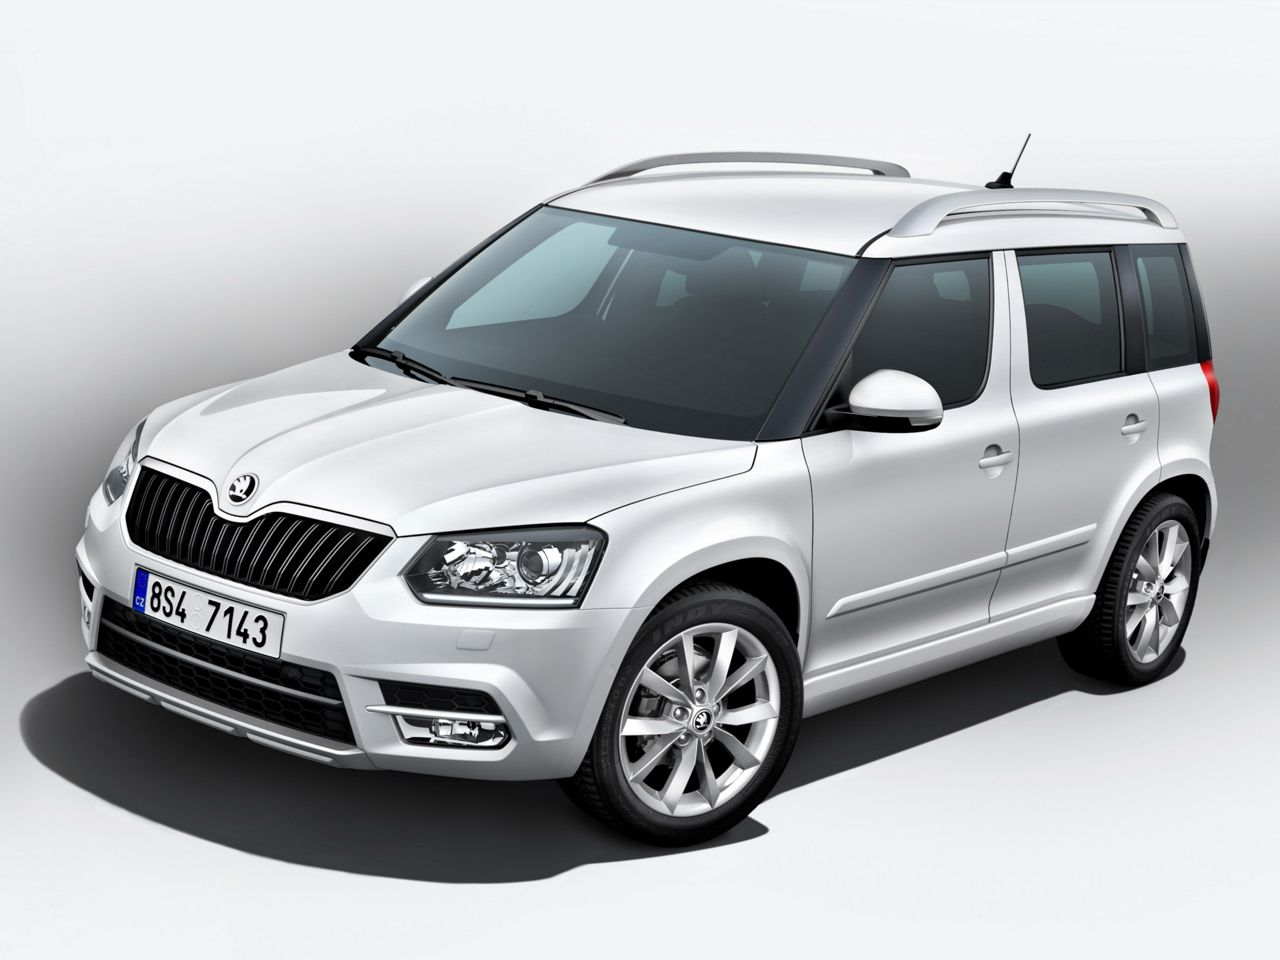 meet the upcoming skoda yeti facelift frankfurt debut images details motoroids. Black Bedroom Furniture Sets. Home Design Ideas